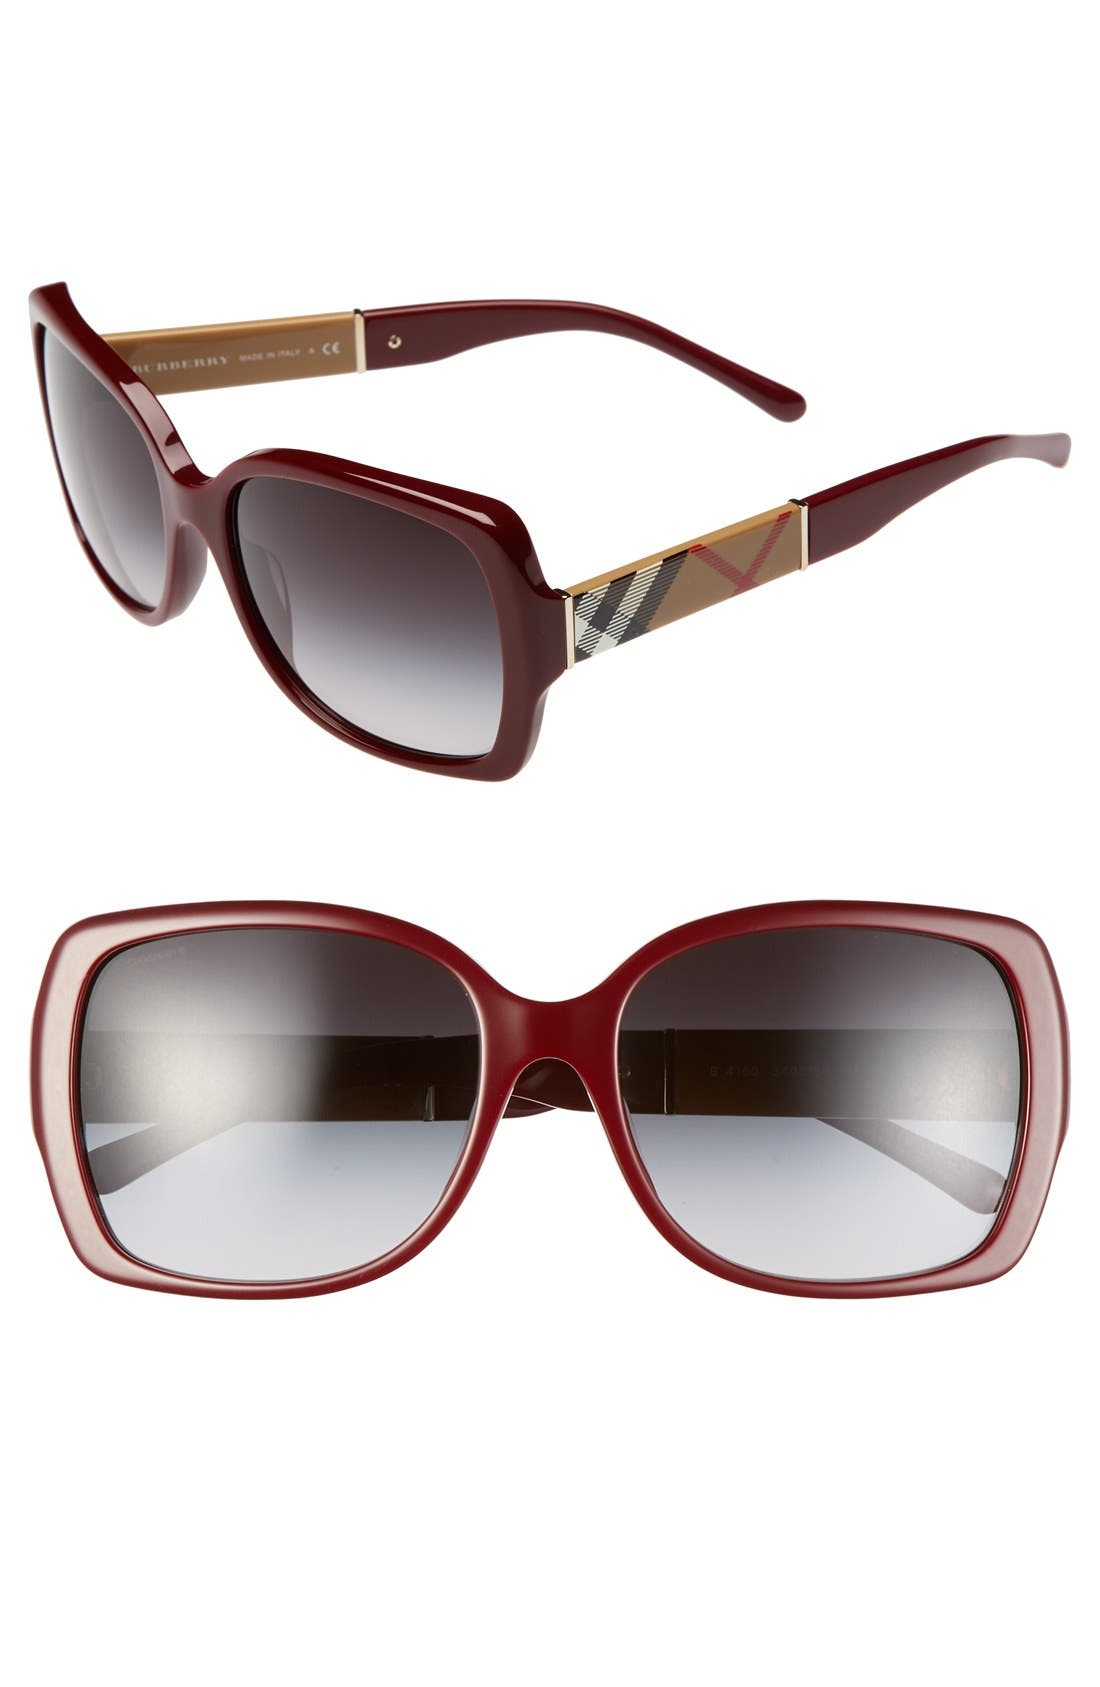 Alternate Image 1 Selected - Burberry 58mm Square Sunglasses